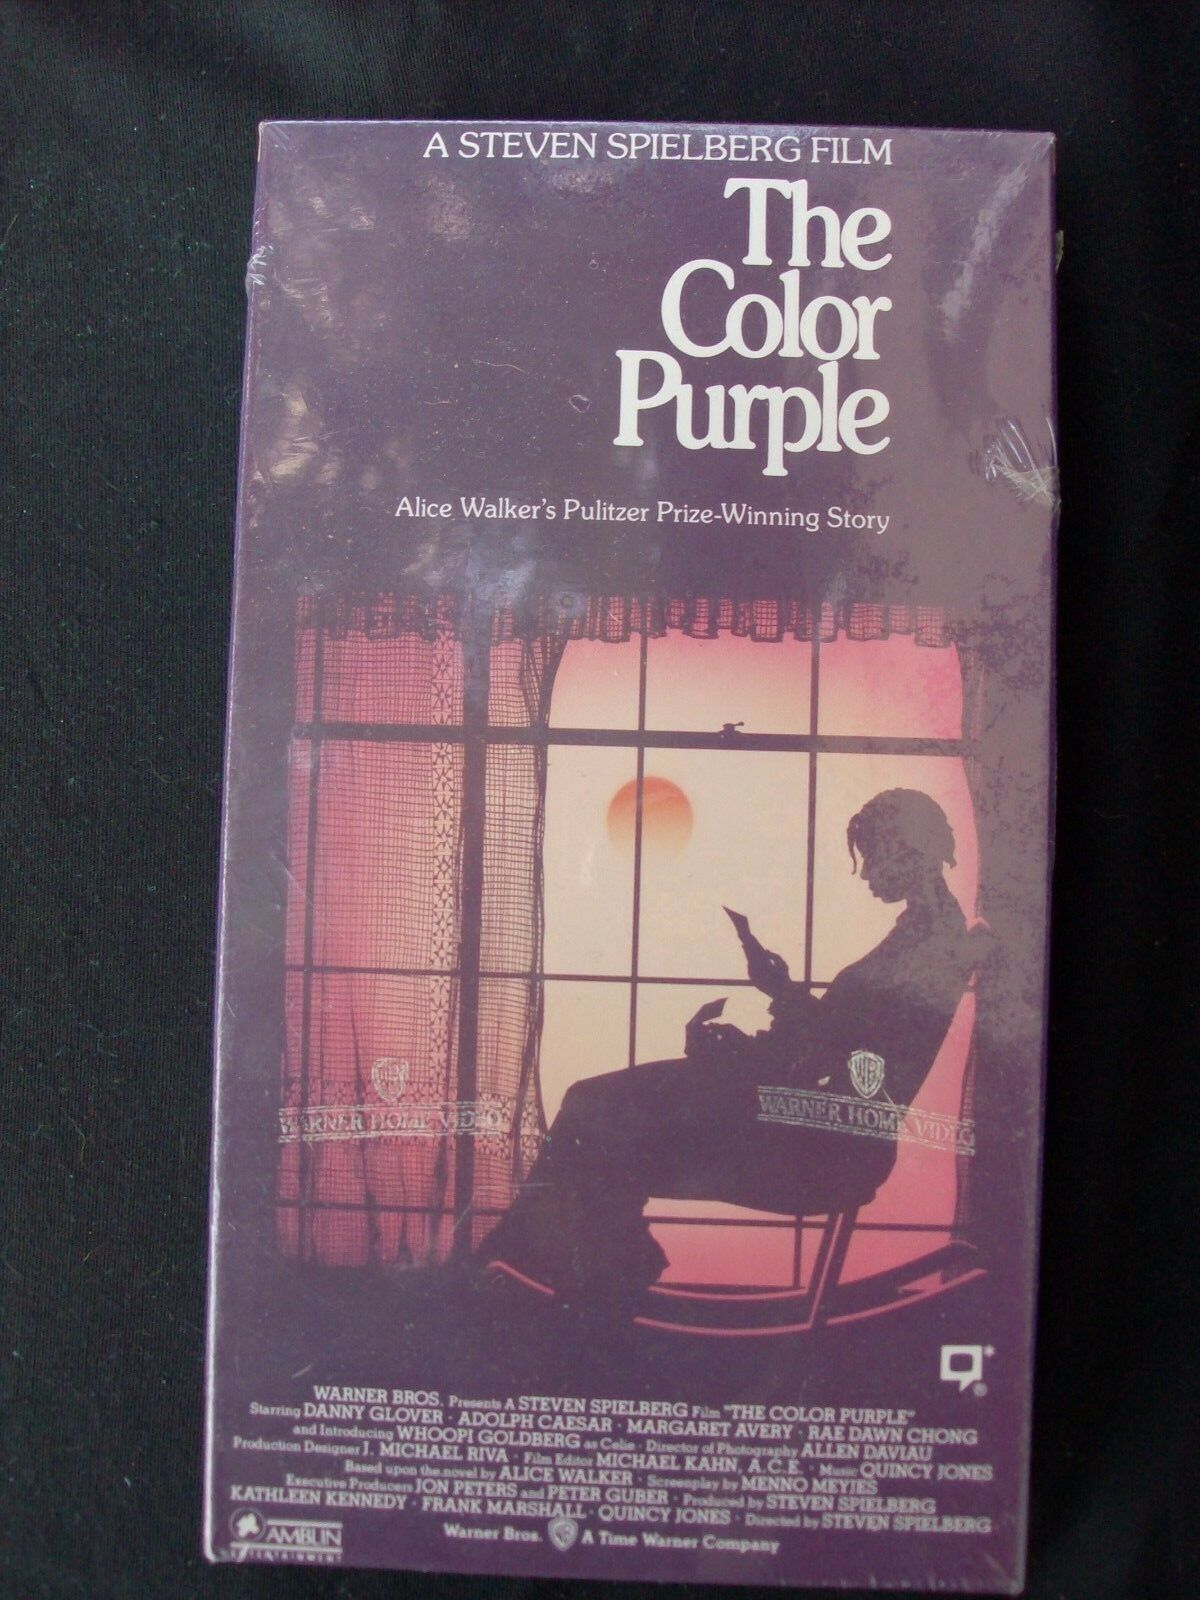 an analysis of the color purple by steven spielberg The color purple is hands down director steven spielberg's single most underrated film of all time it is a harrowing account of four black women in the early 1900's that suffer rape, incest, racism, separation, and domestic abuse all while enduring poverty.